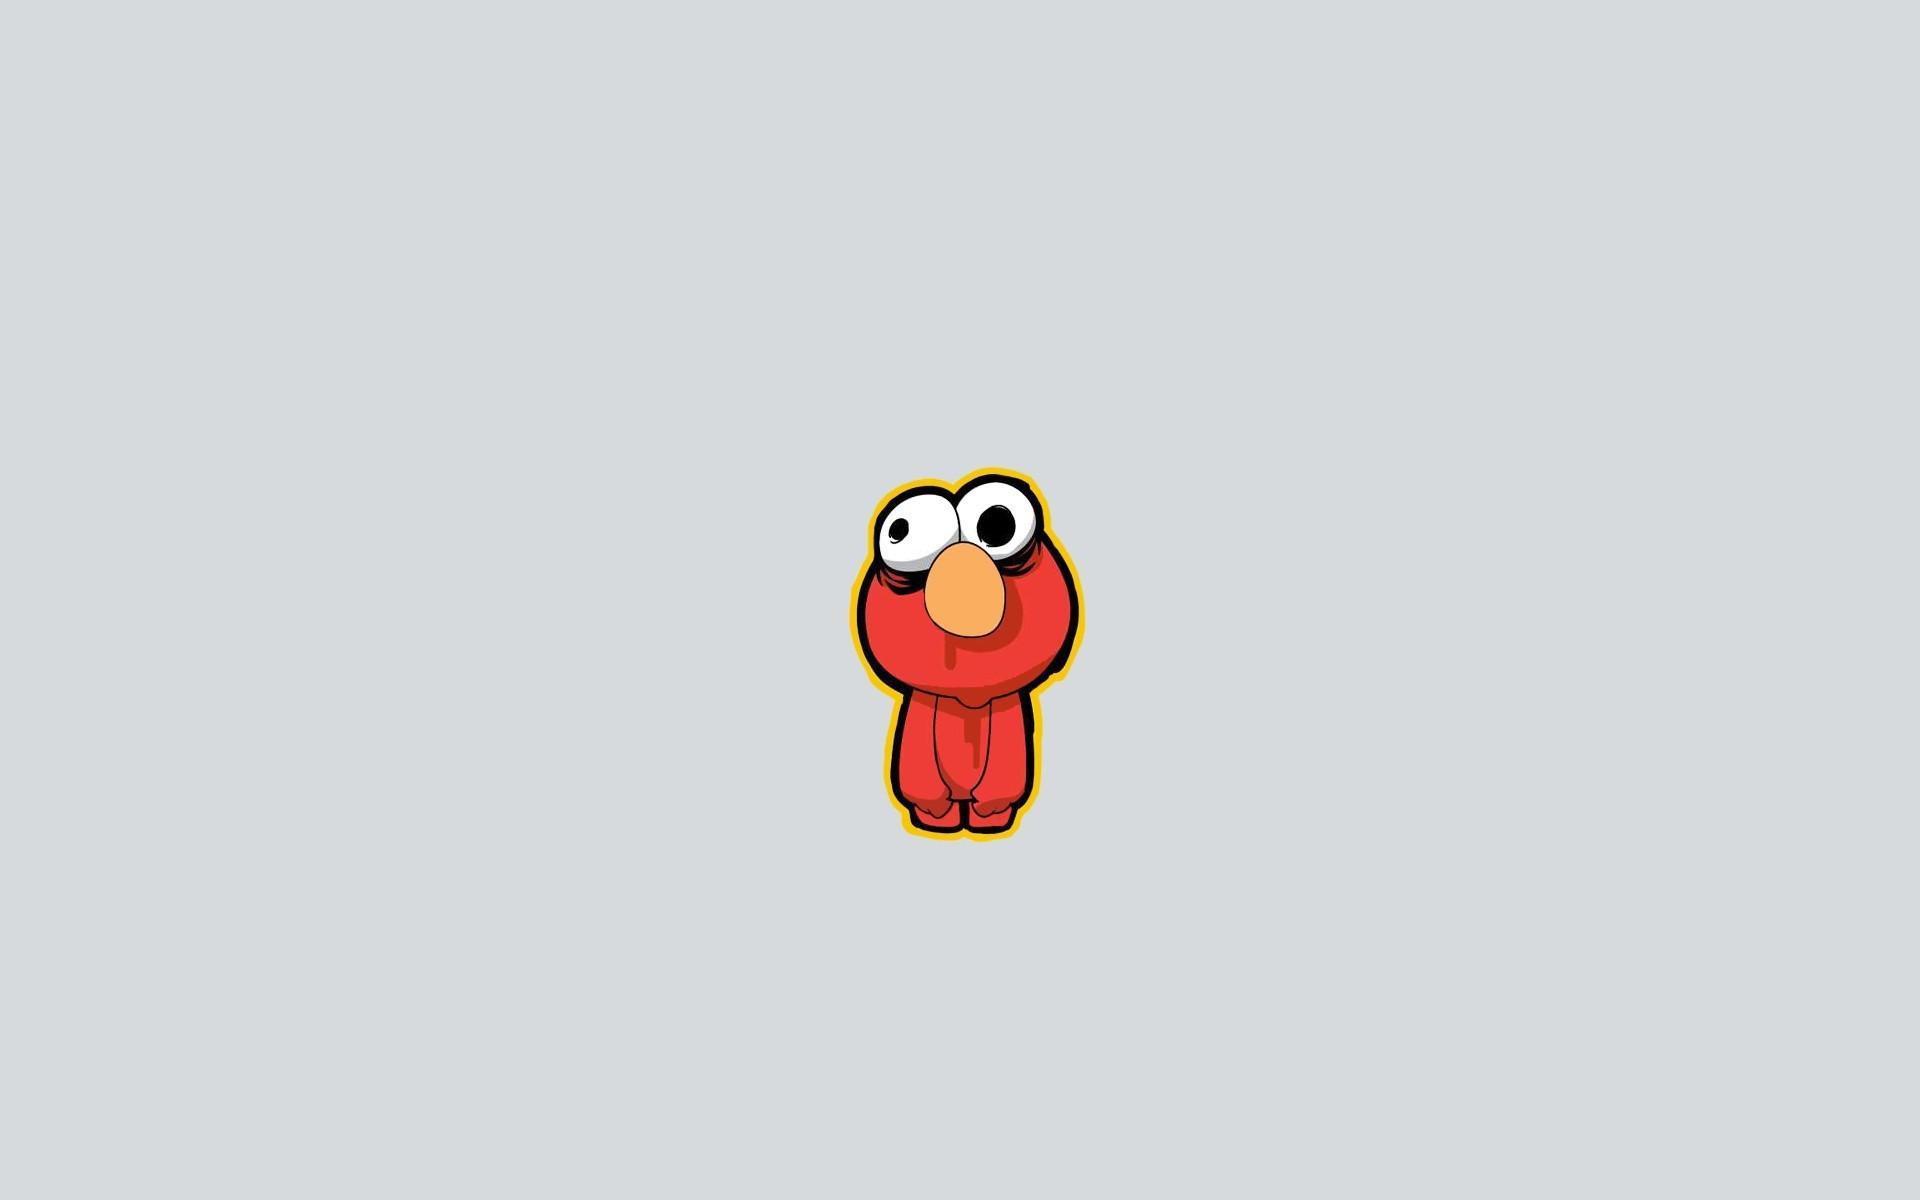 1920x1200 Elmo from Sesame Street, a gray background